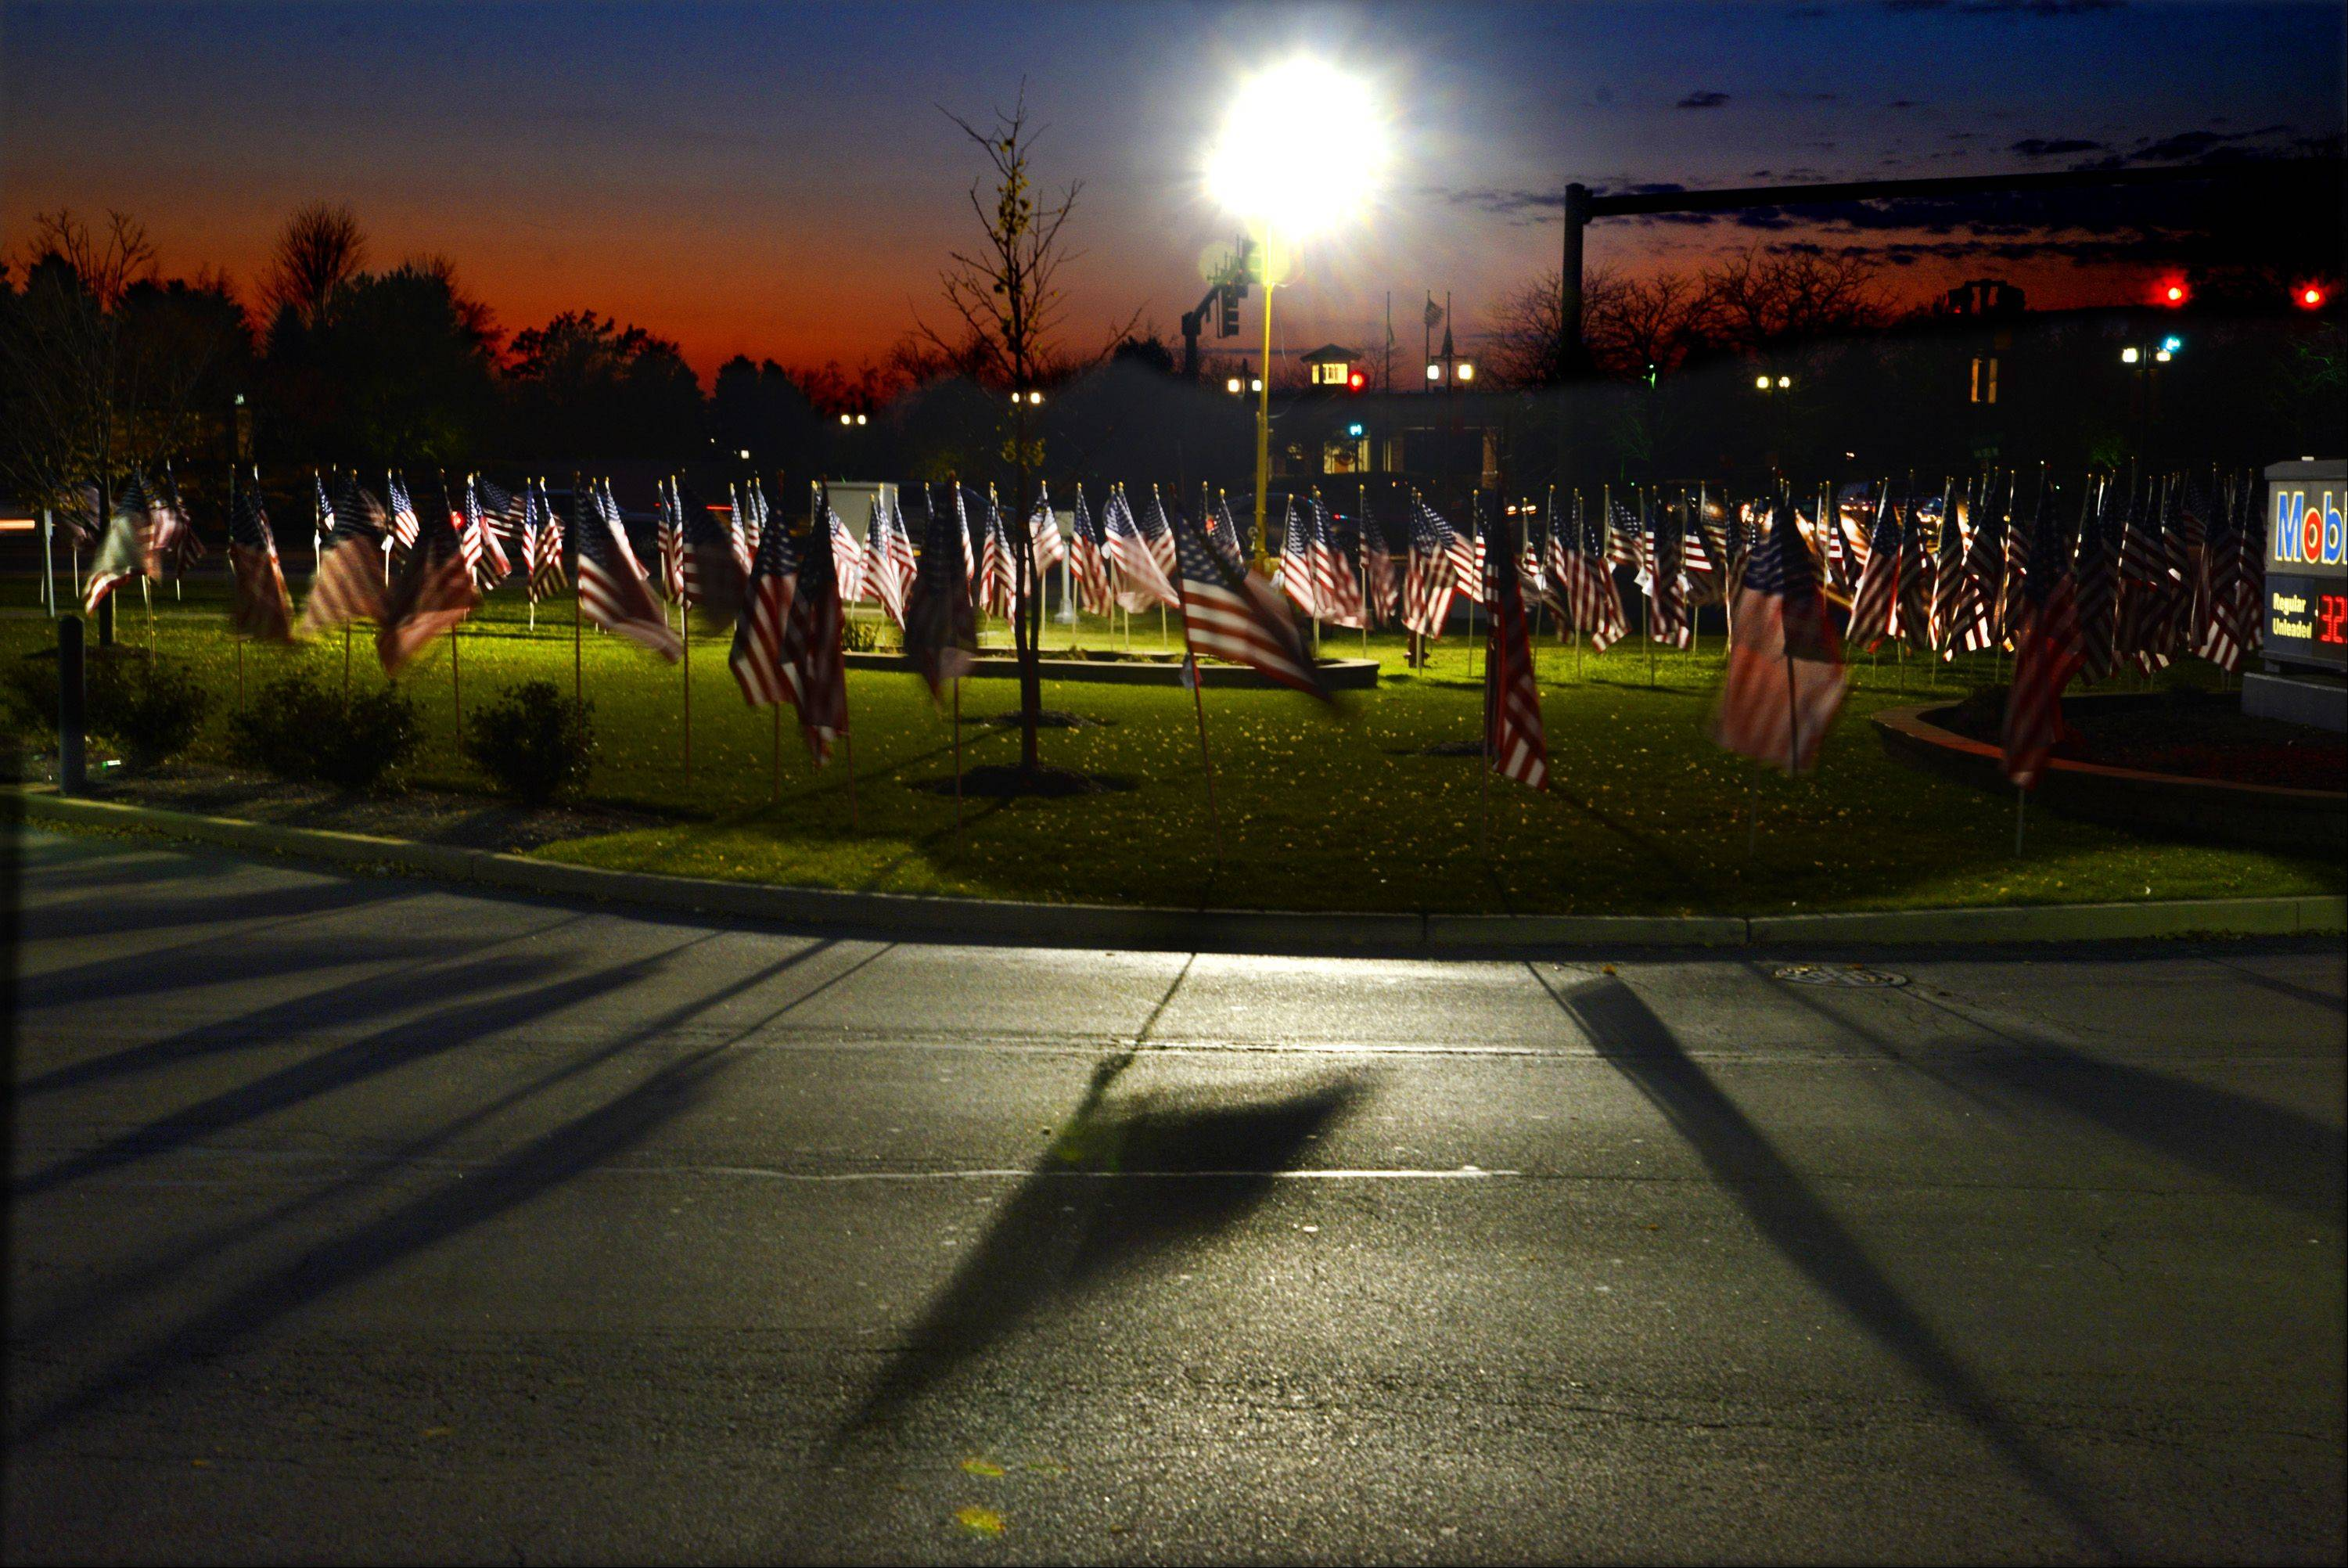 Culver's in Huntley is flying almost 400 flags on Route 47. Each flag represents a fallen soldier from the Chicago area since 9/11.